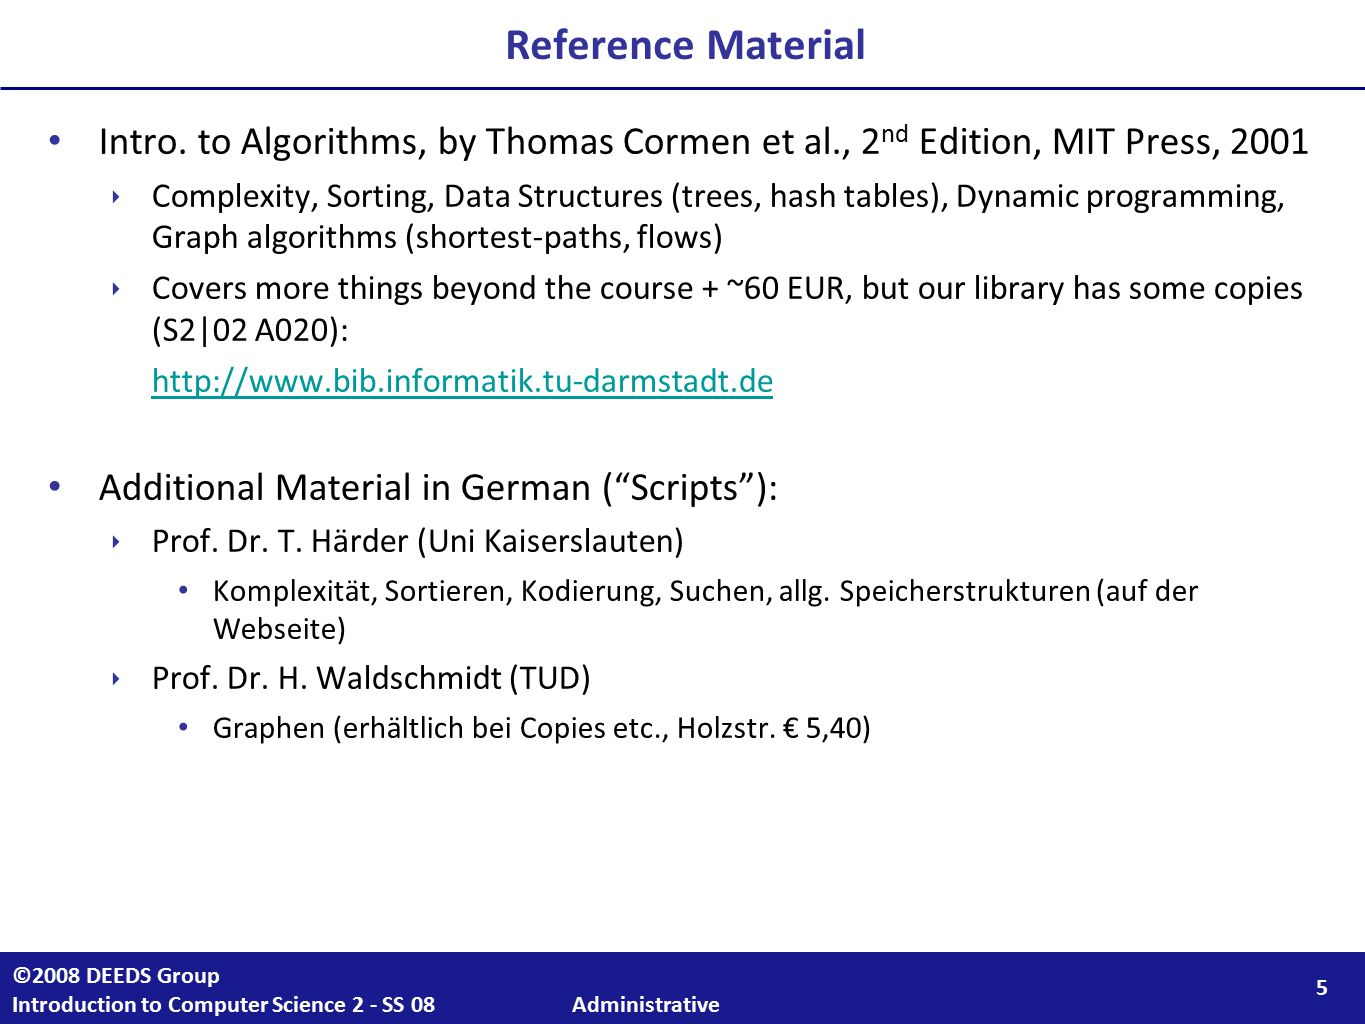 5 ©2008 DEEDS Group Introduction to Computer Science 2 - SS 08 Administrative Reference Material Intro. to Algorithms, by Thomas Cormen et al., 2 nd E